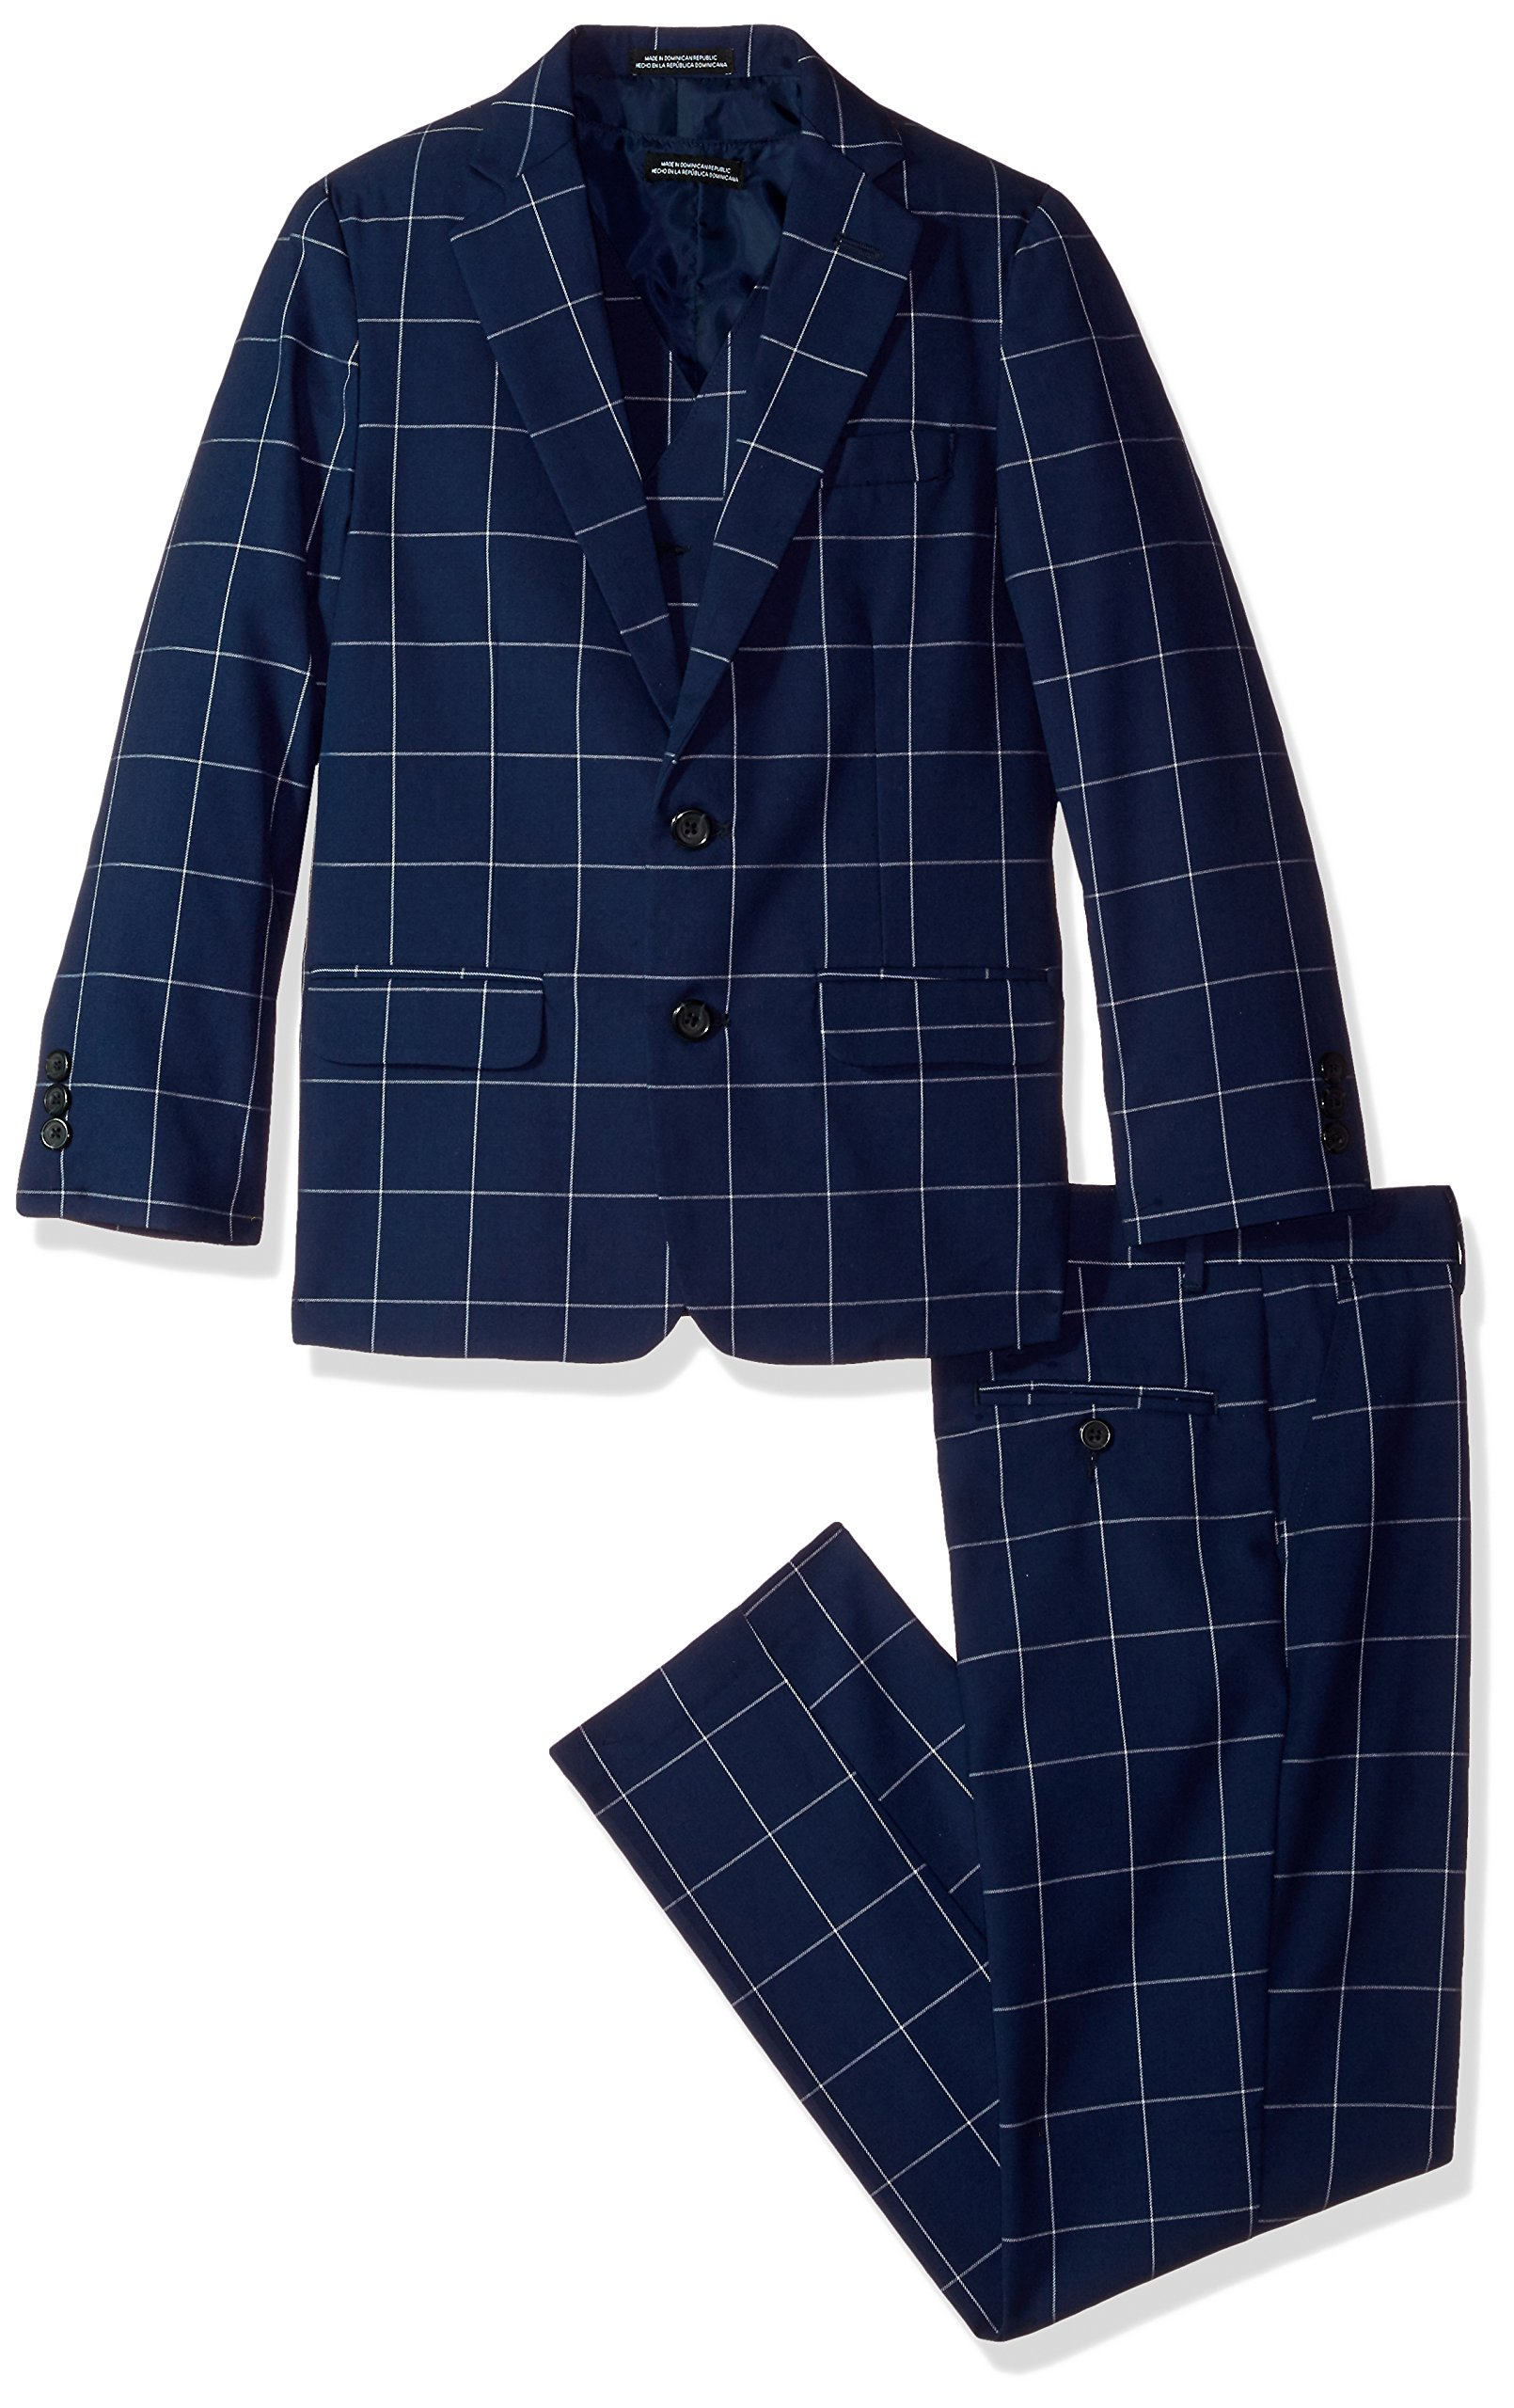 Steve Harvey Big Boys' Three Piece Suit Set, Dark Blue Windowpane, 14